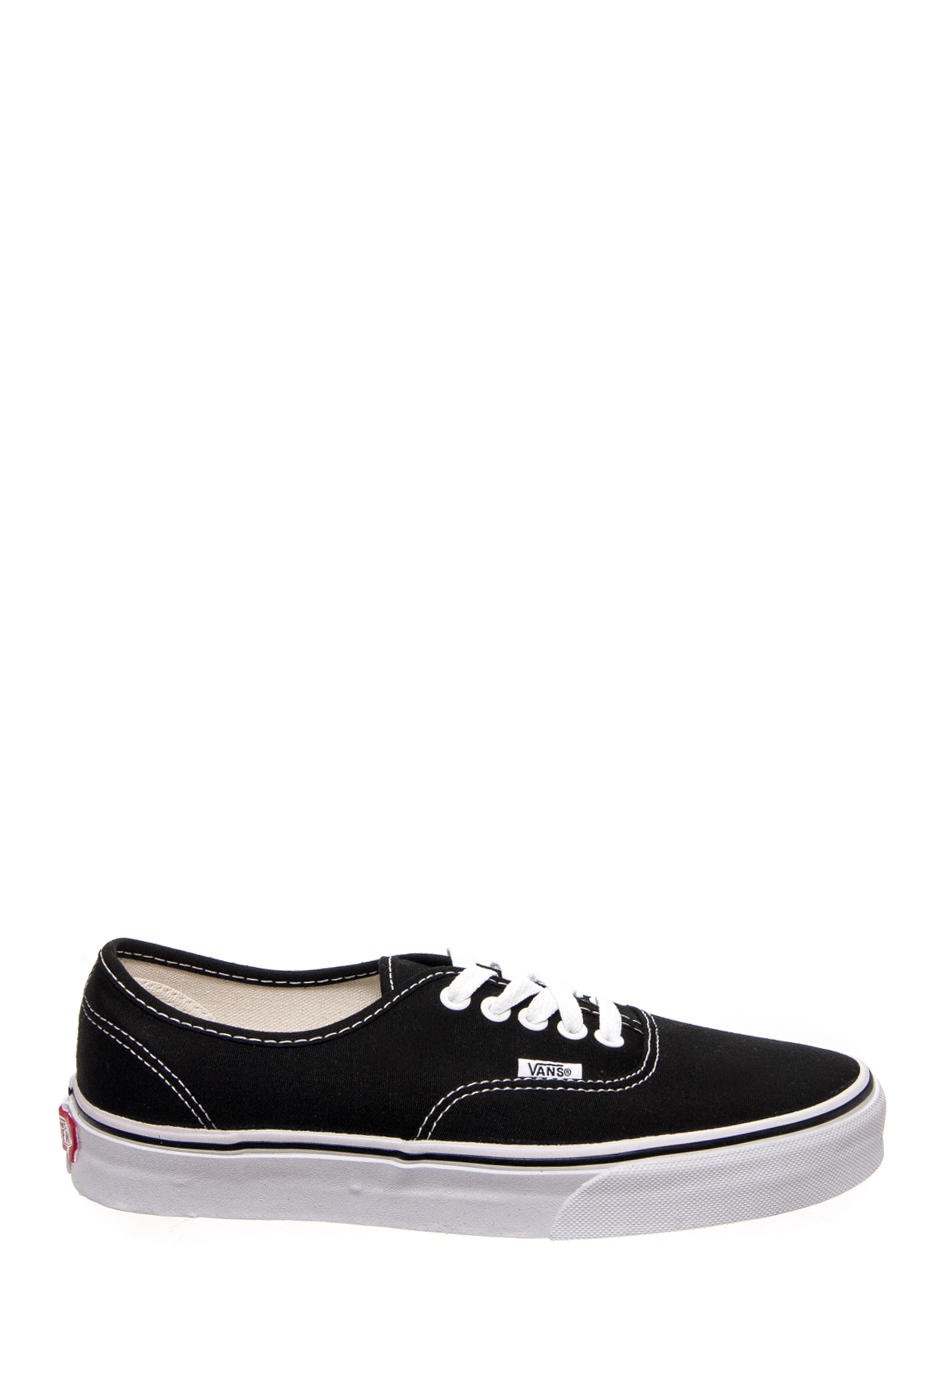 05a6f66f3be3dc Vans VN-0EE3BKA Unisex Authentic Classic Canvas Low Top Sneakers - Black    White